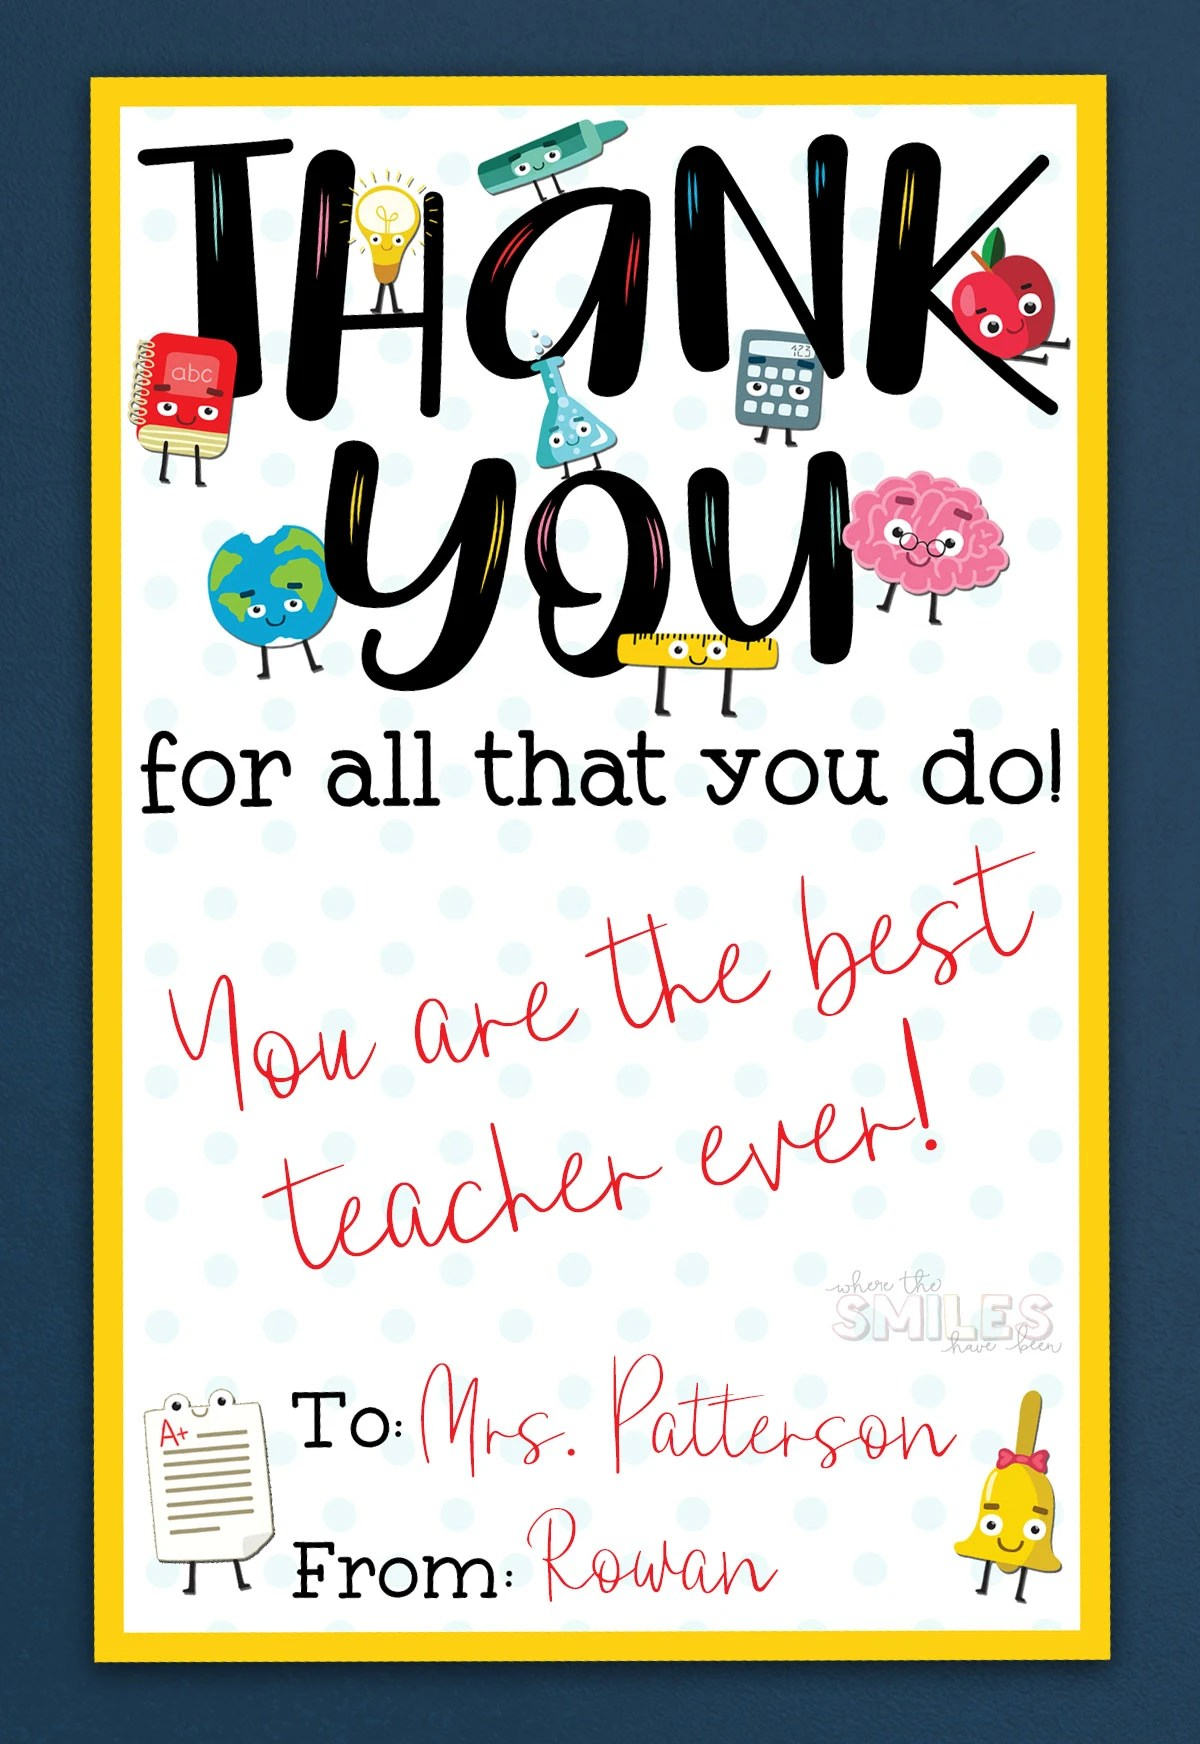 It's just a graphic of Free Printable Teacher Appreciation Cards with small